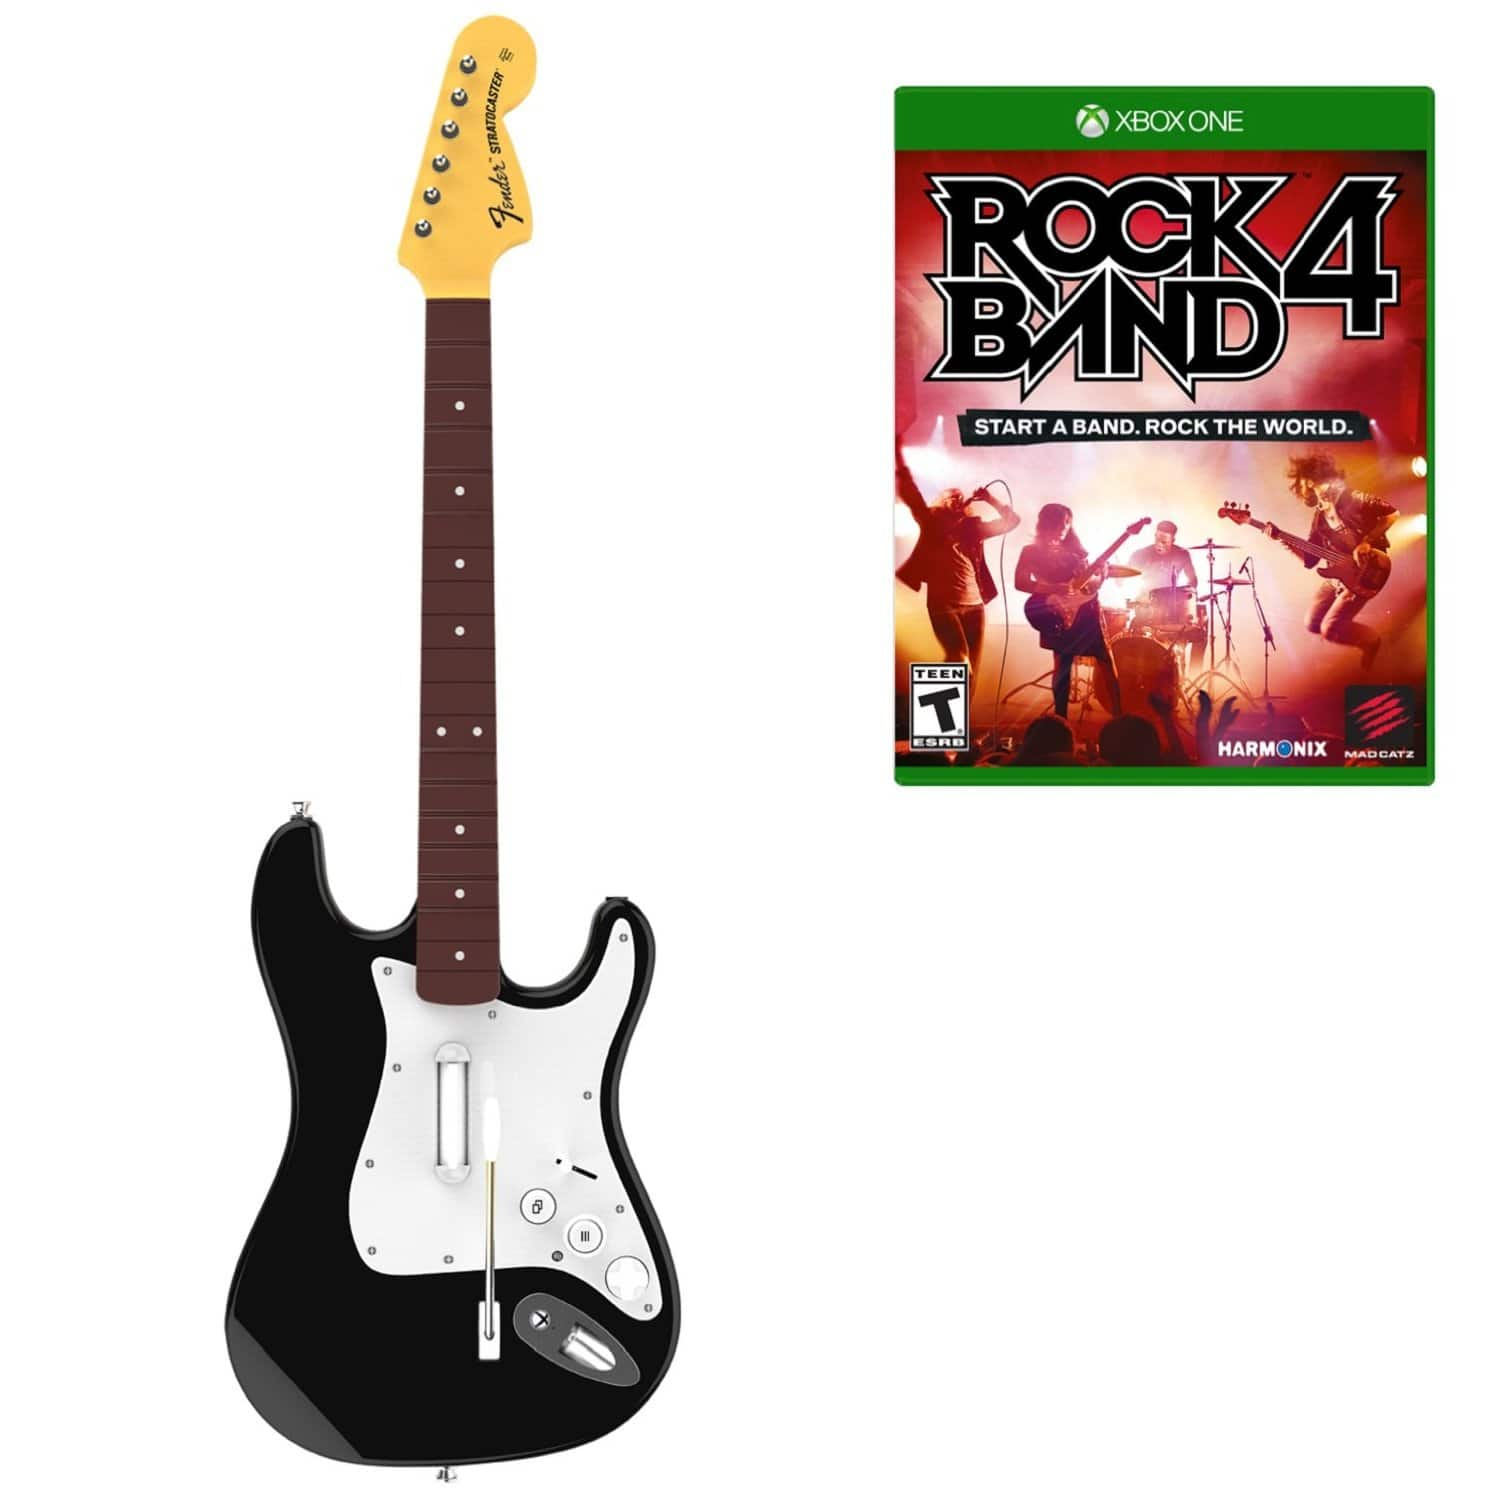 Rock Band 4 with Guitar PS4/Xbox One $79.99 from Amazon